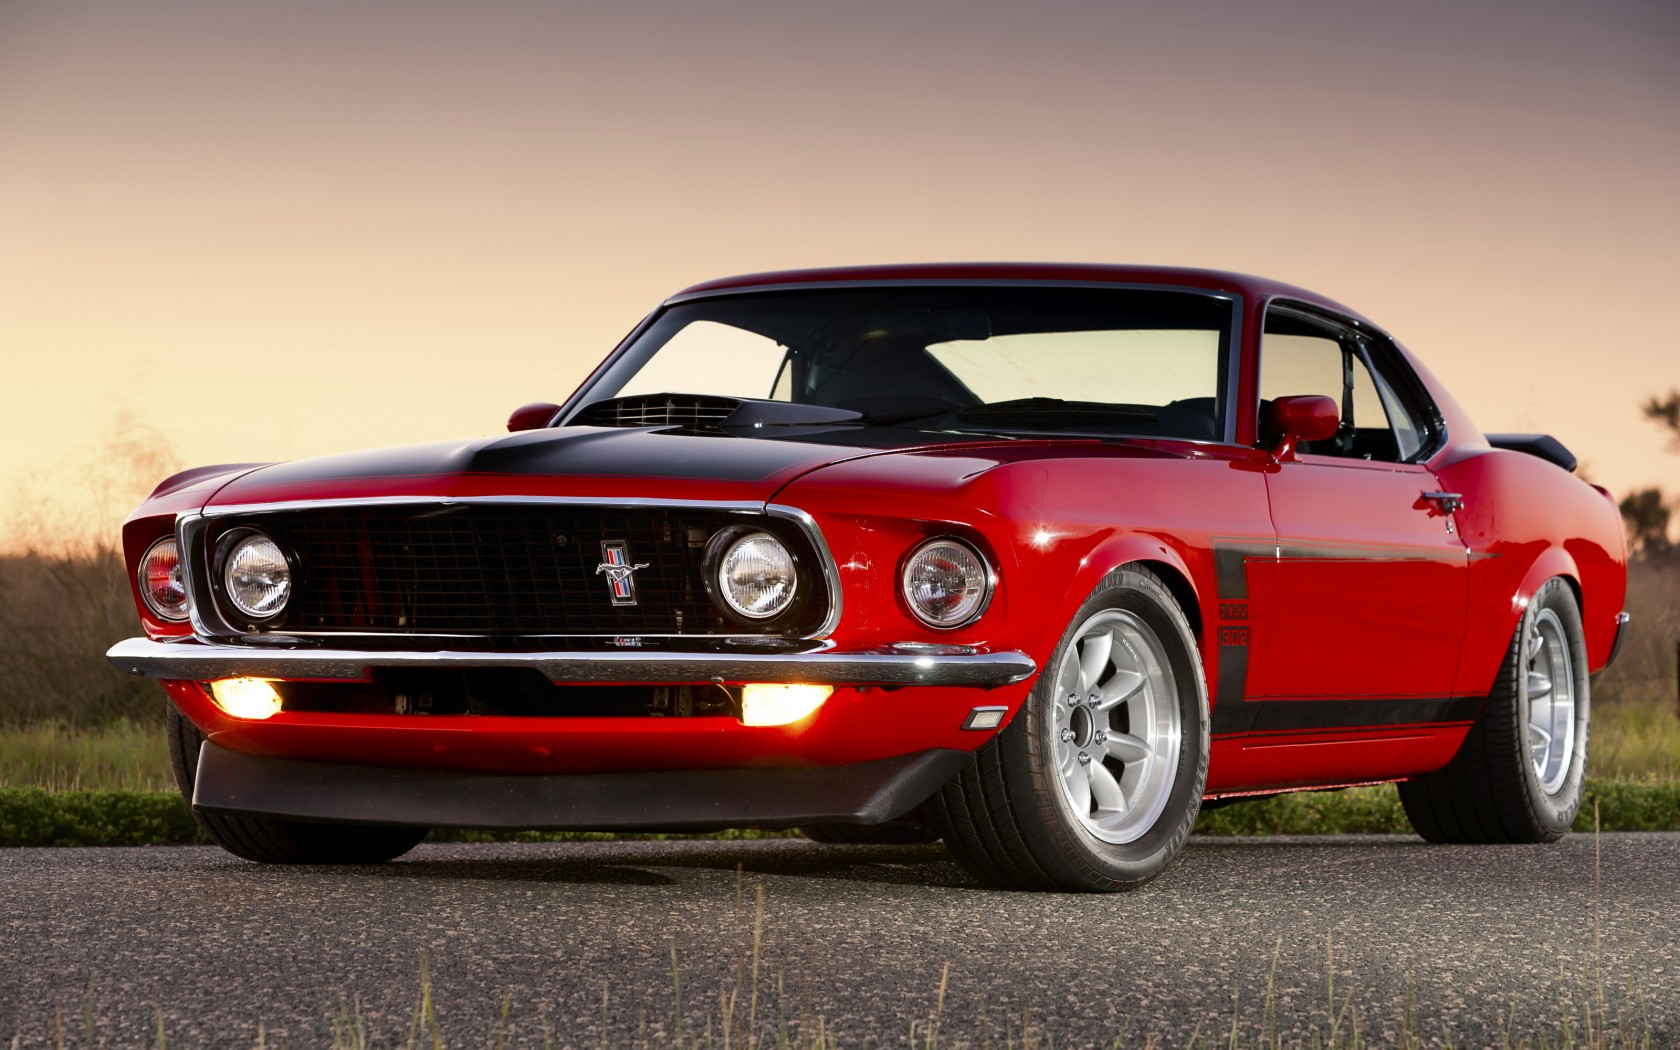 Free Download Ford Mustang Boss 302 Fondos De Pantalla Hd Wallpapers Hd 1680x1050 For Your Desktop Mobile Tablet Explore 70 Ford Mustang Backgrounds Hd Mustang Wallpapers Ford Wallpapers For Desktop